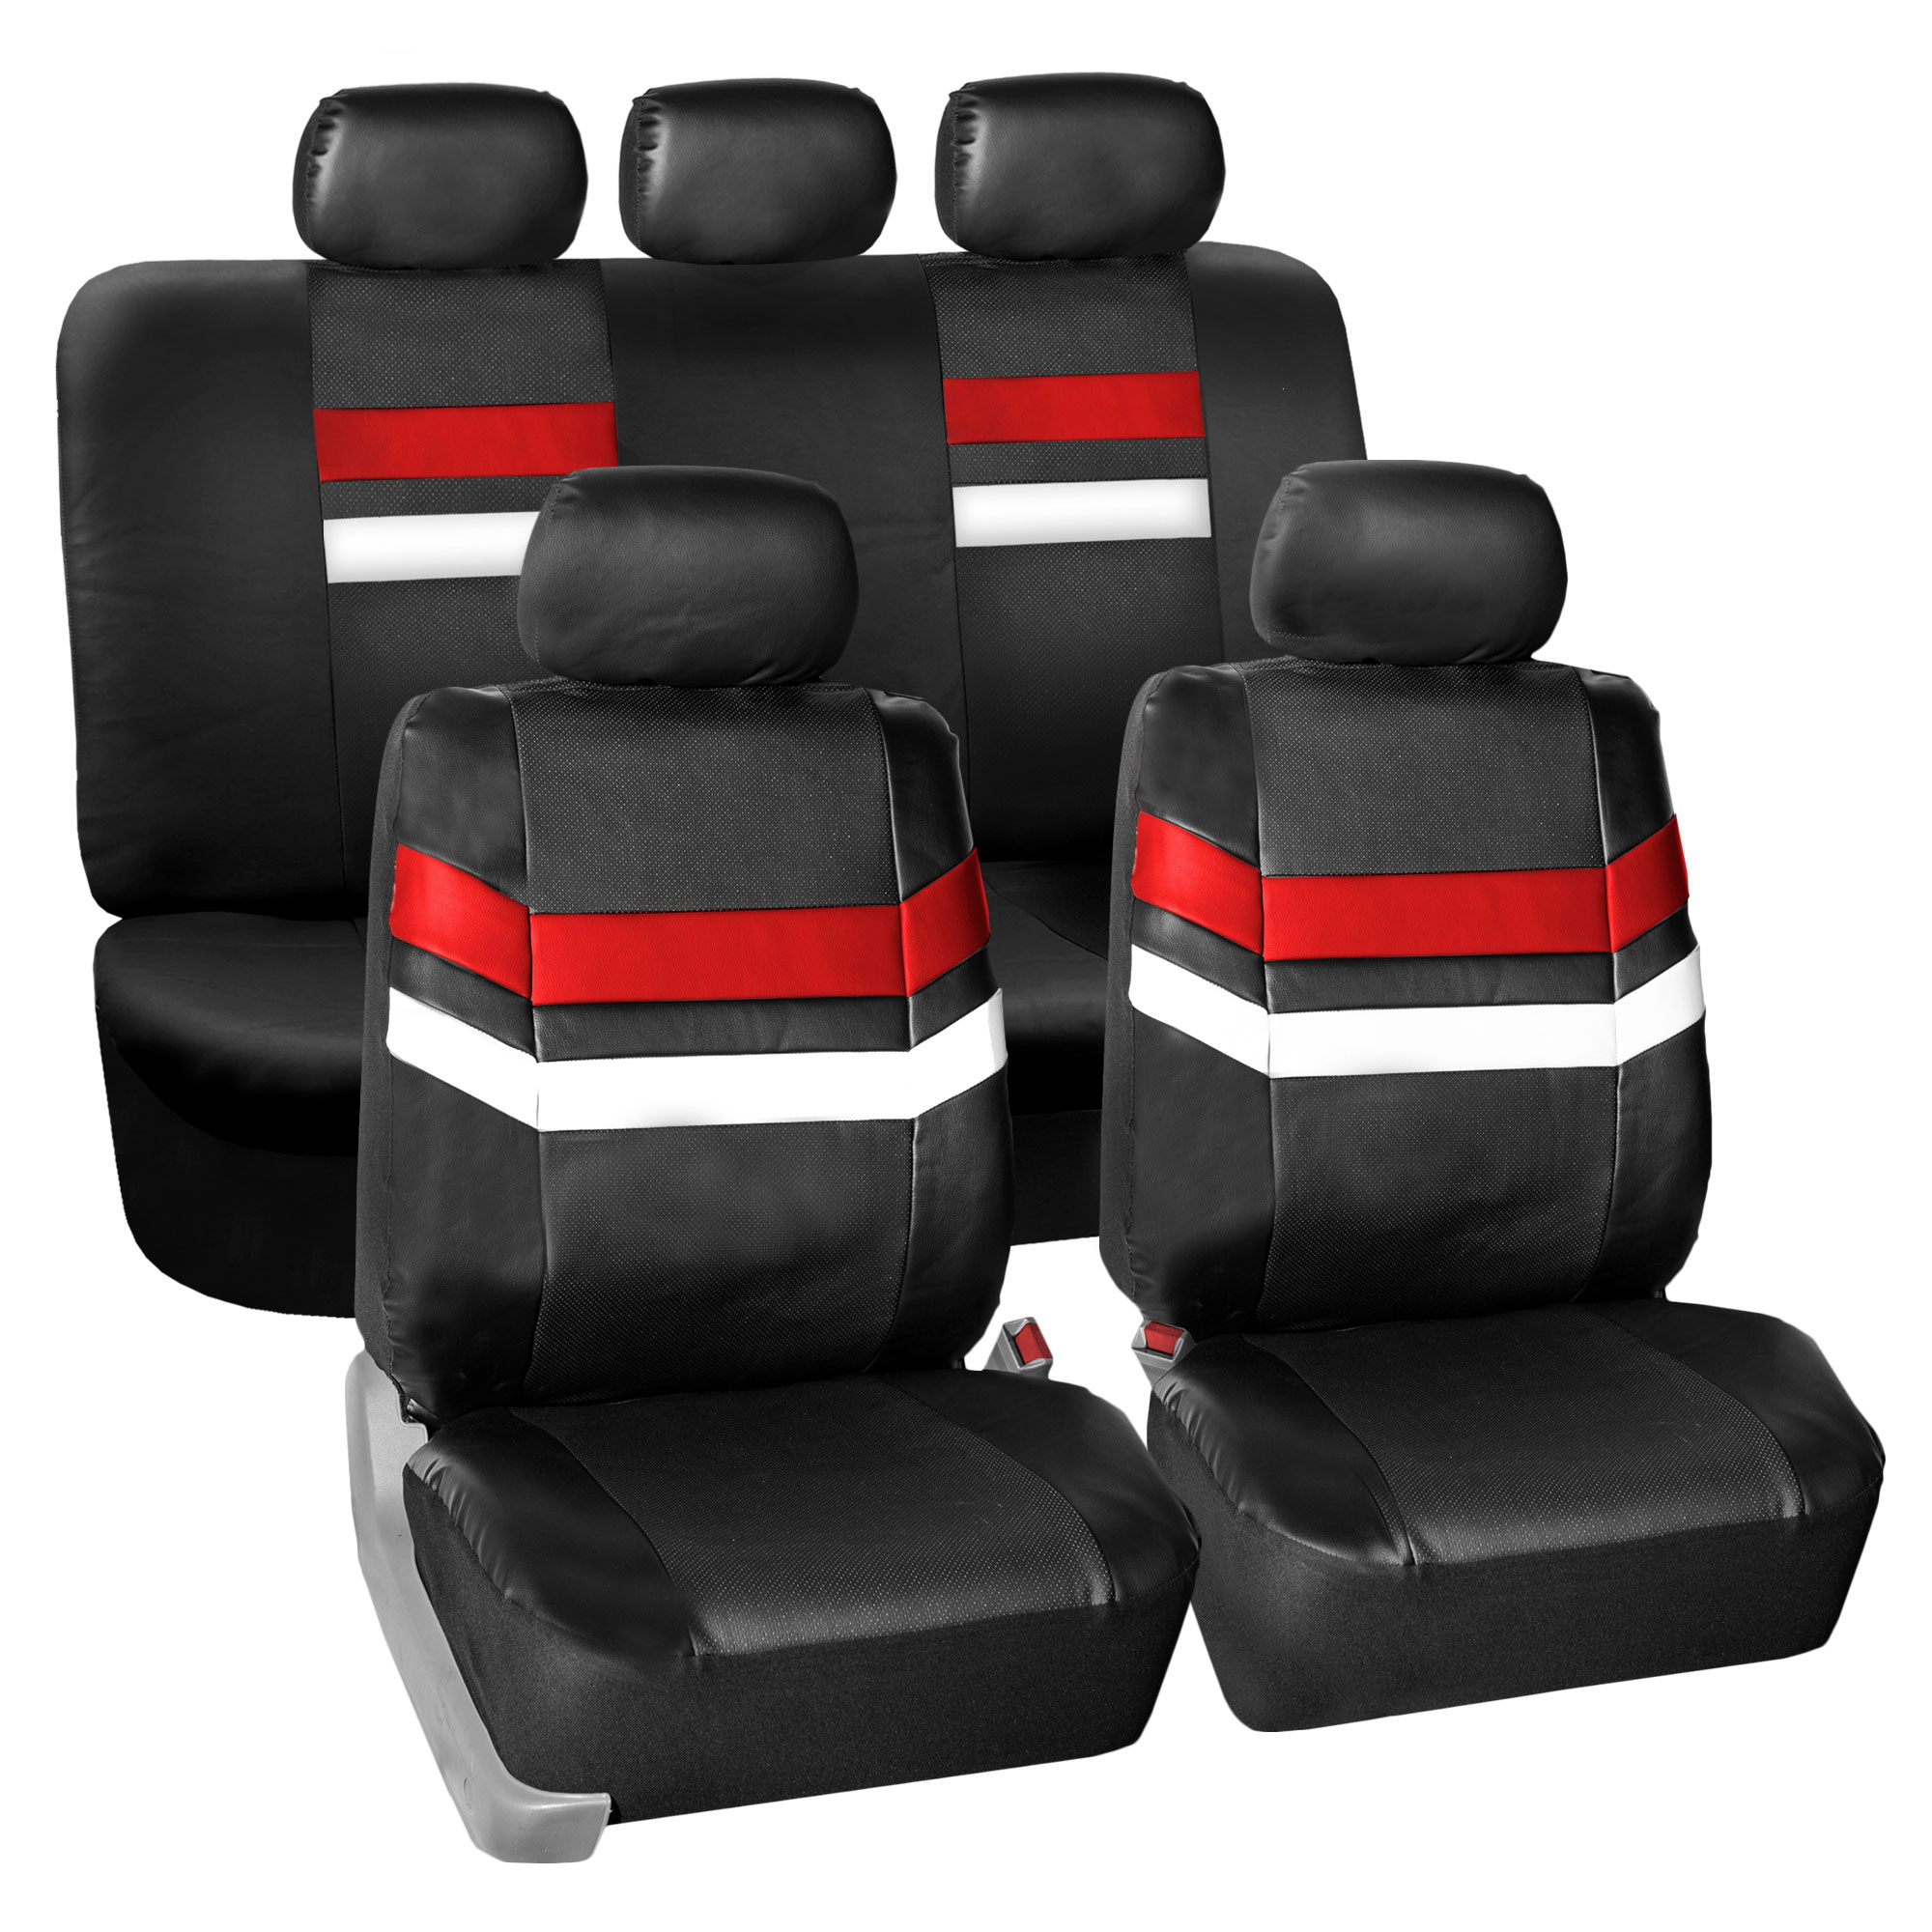 auto seat covers pu leather for car van suv truck top quality 11 colors. Black Bedroom Furniture Sets. Home Design Ideas